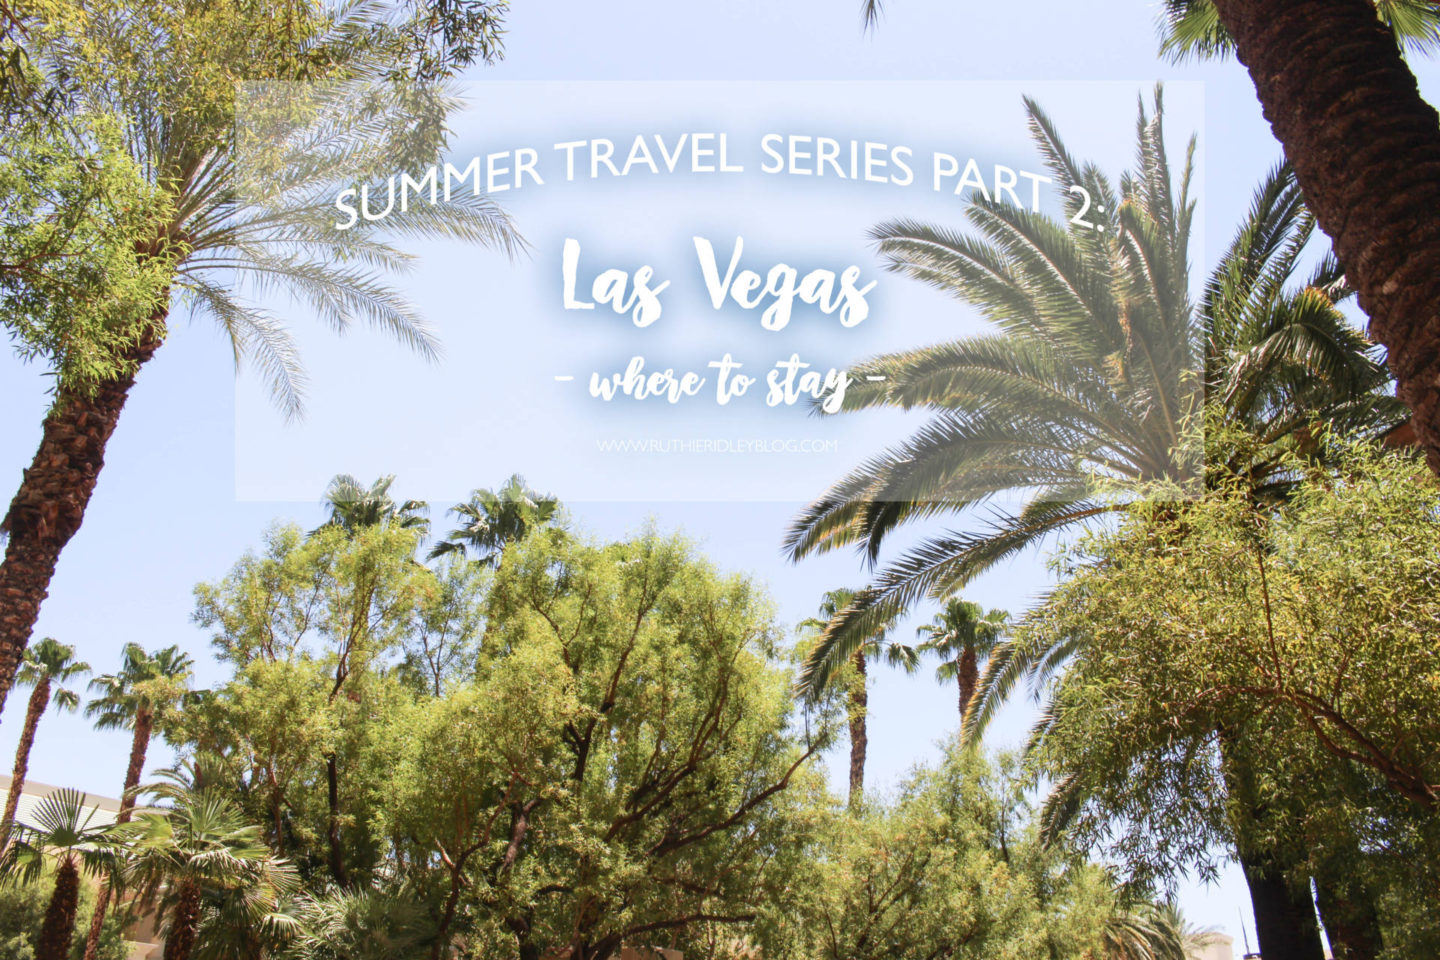 Summer Travel Series Part 2: Las Vegas-Where To Stay